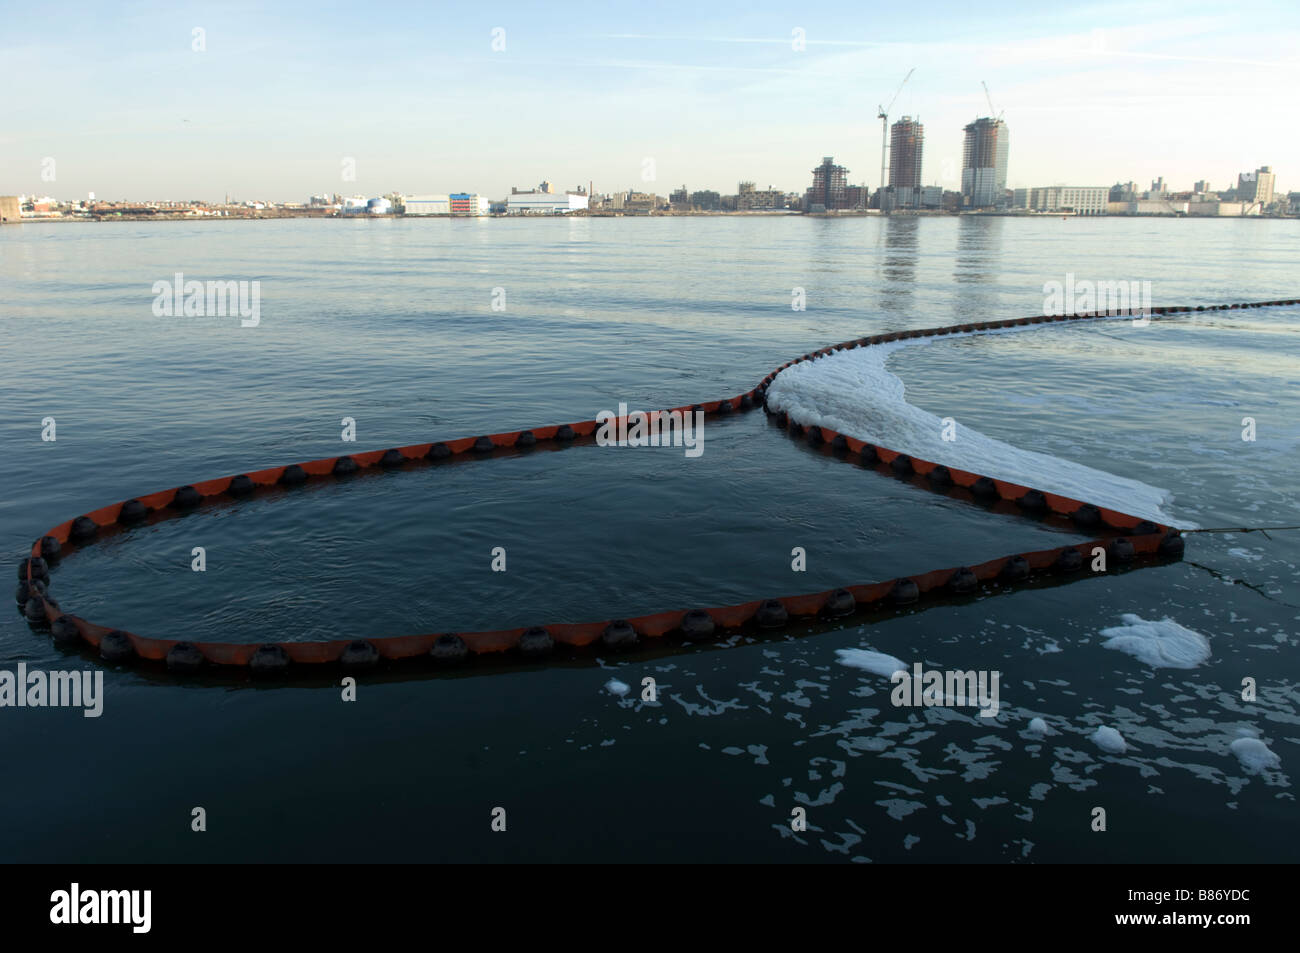 A boom to contain material from flowing into the East River in New York on Saturday February 7 2009 Frances M Roberts - Stock Image